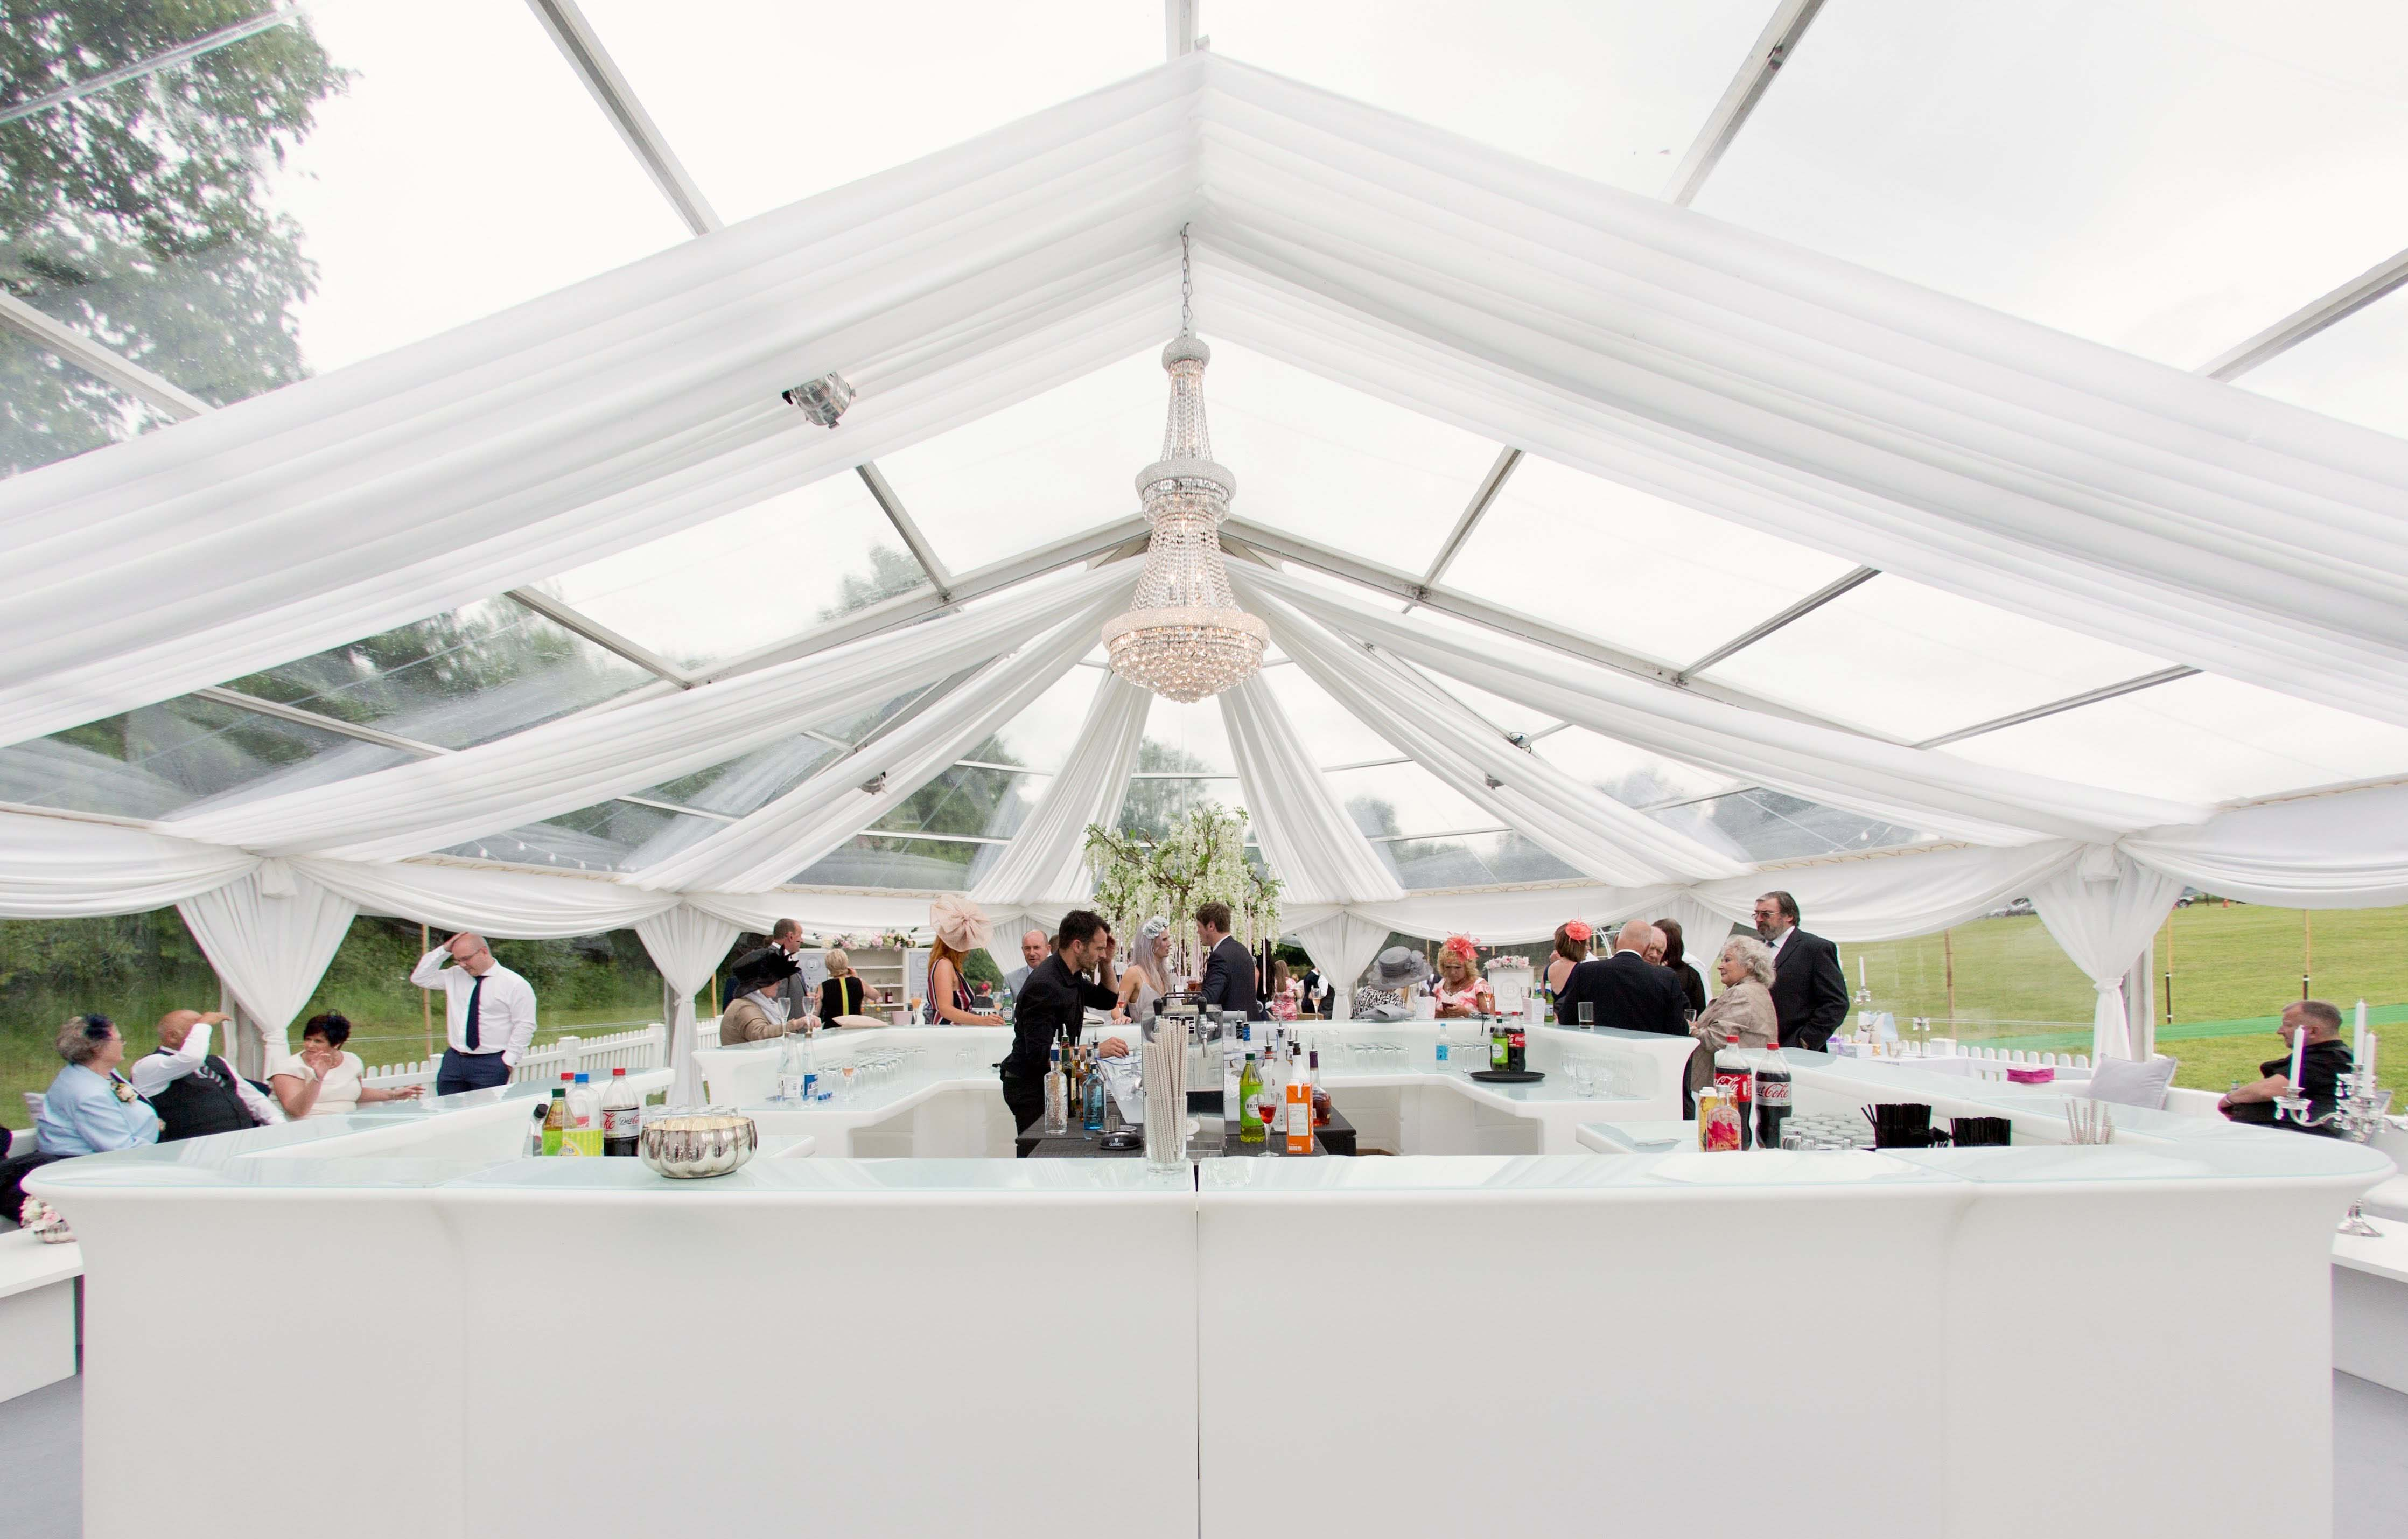 Marquee wedding decor hire with ceiling drapes and crystal empire chandelier